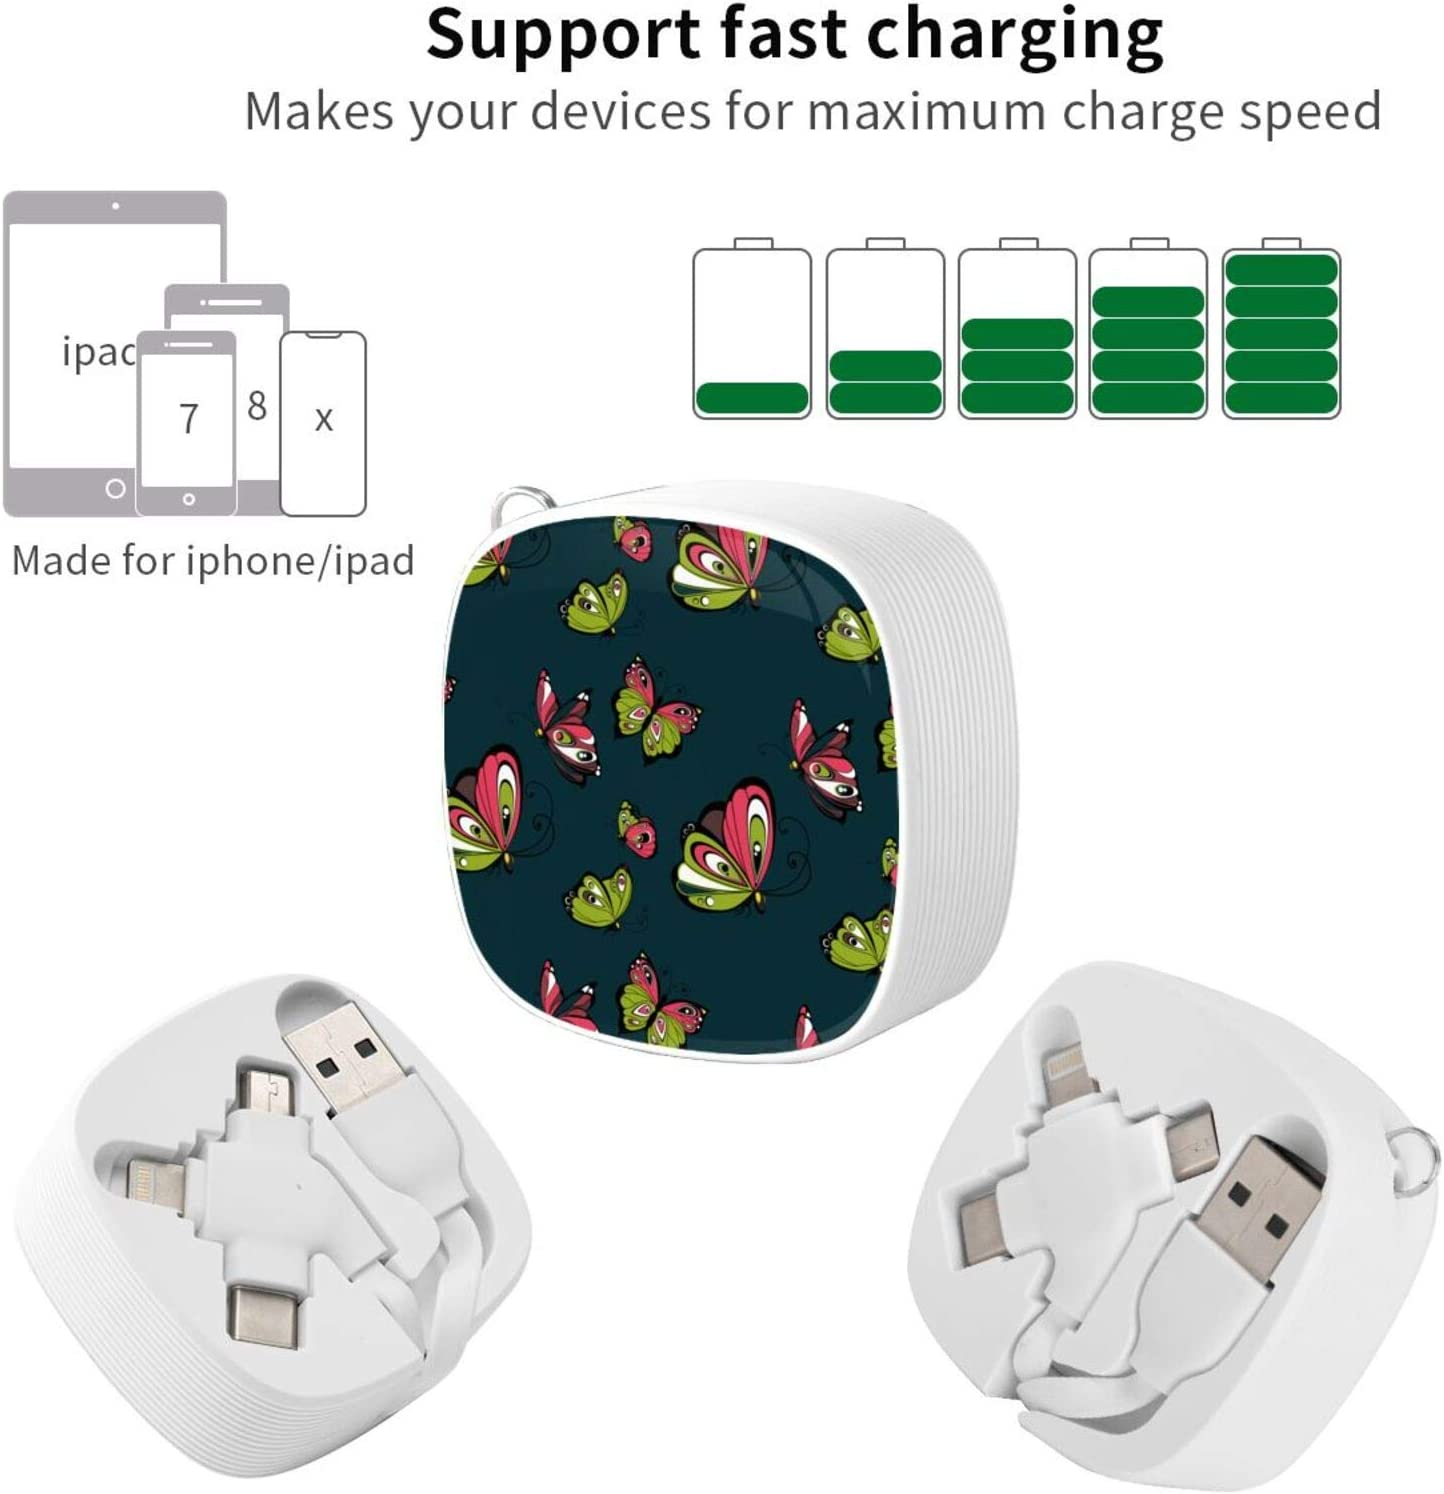 Butterfly Artthe Square Three-in-One USB Cable is A Universal Interface Charging Cable Suitable for Various Mobile Phones and Tablets